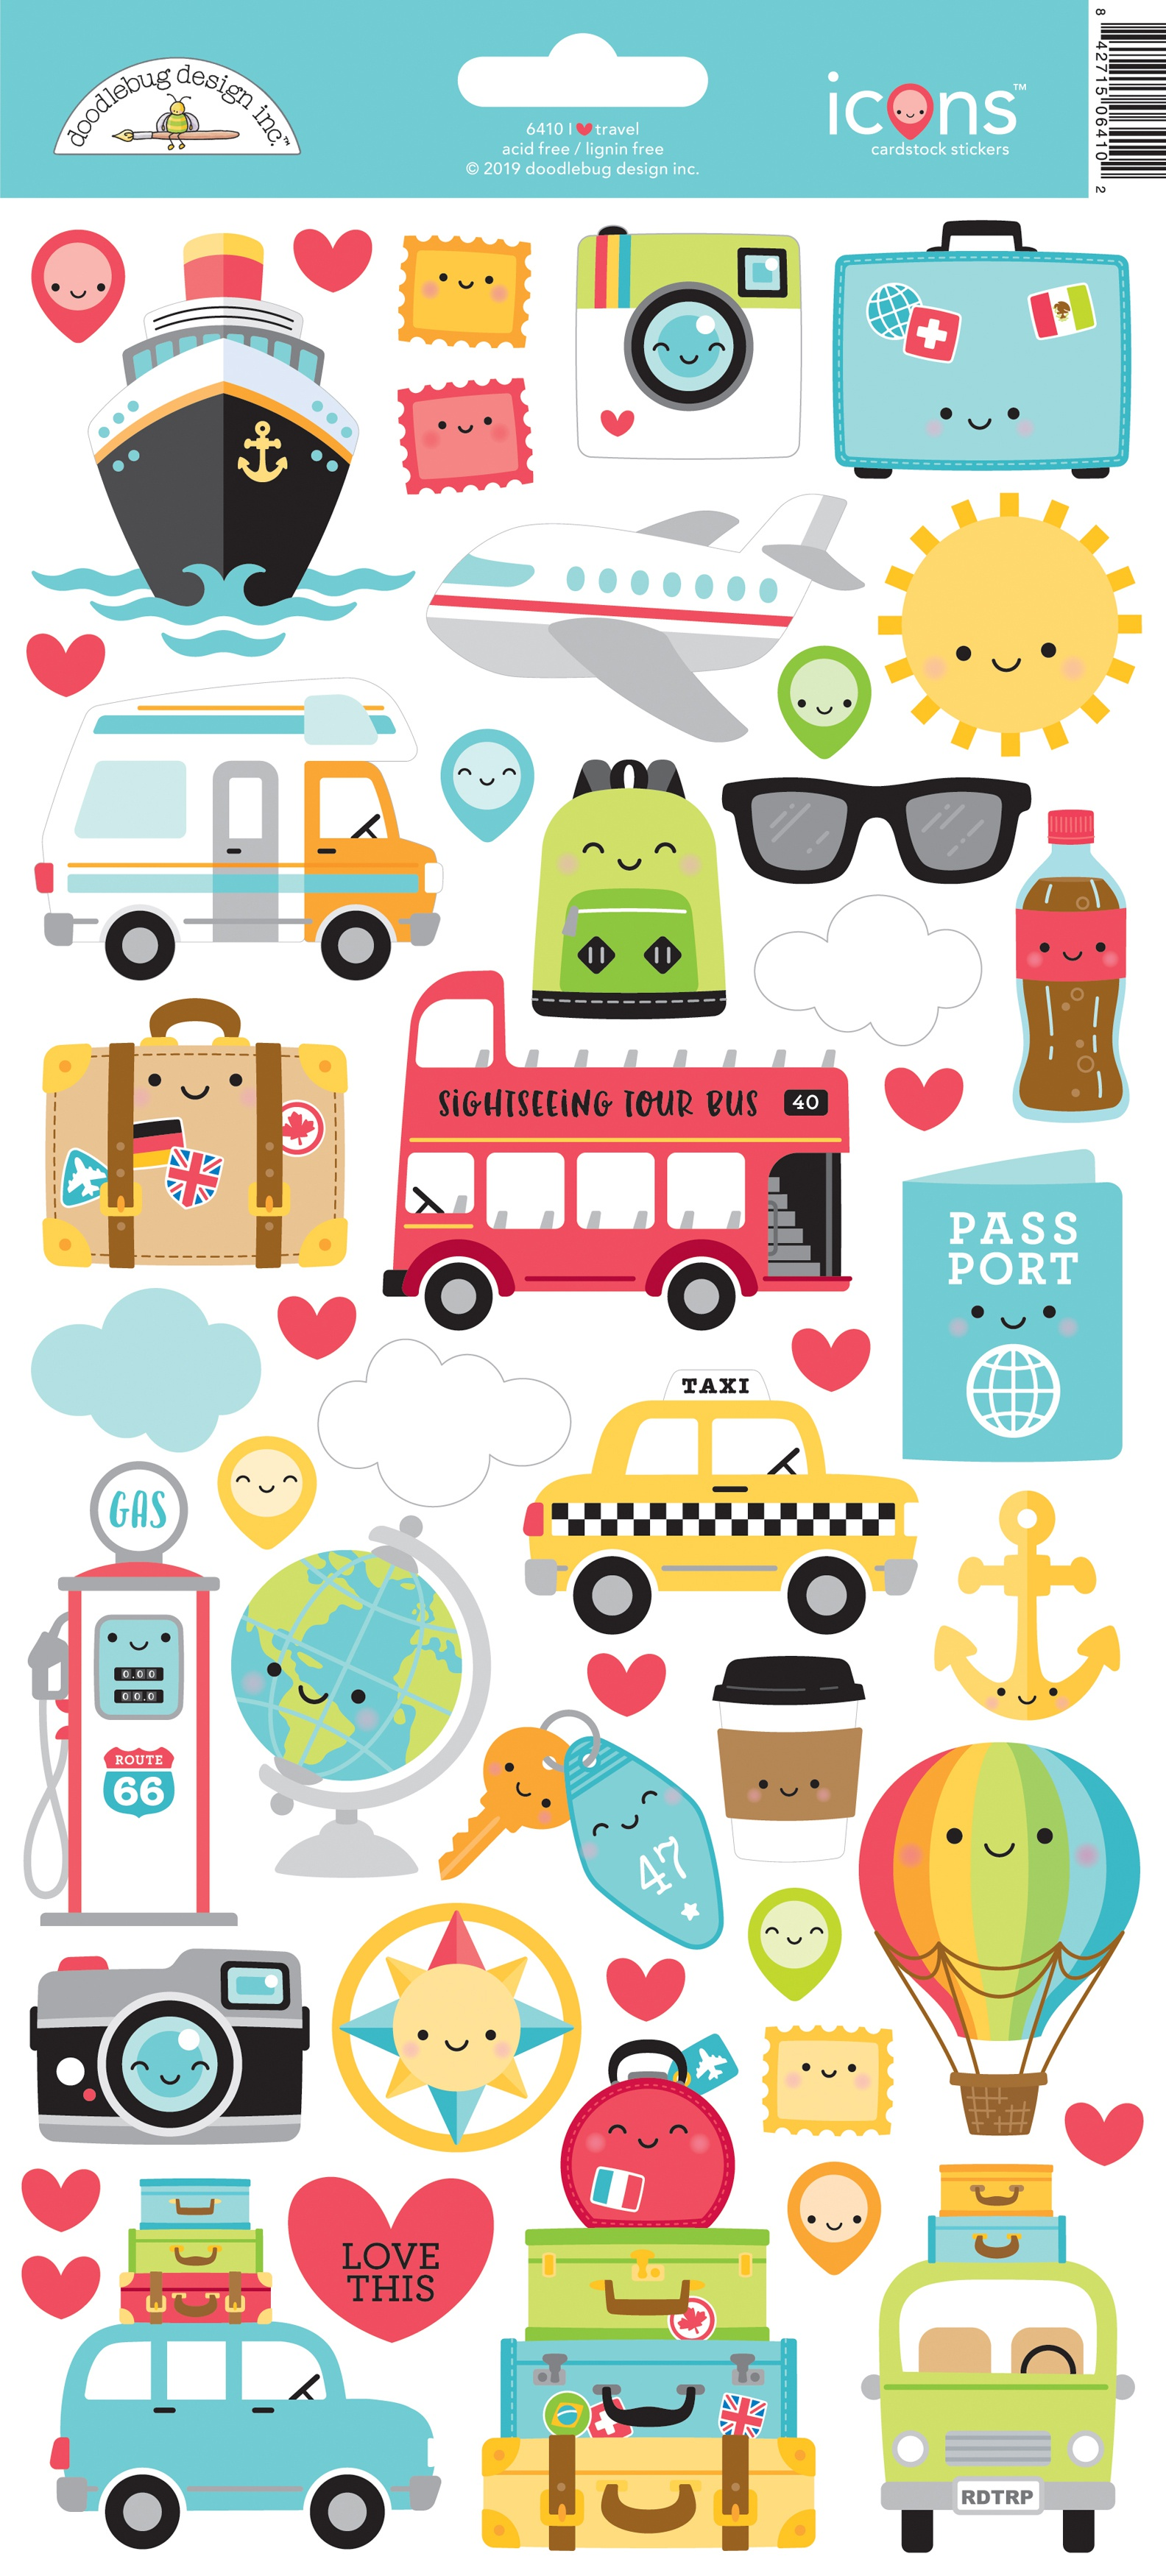 Doodlebug I Heart Travel - Icons Cardstock Stickers